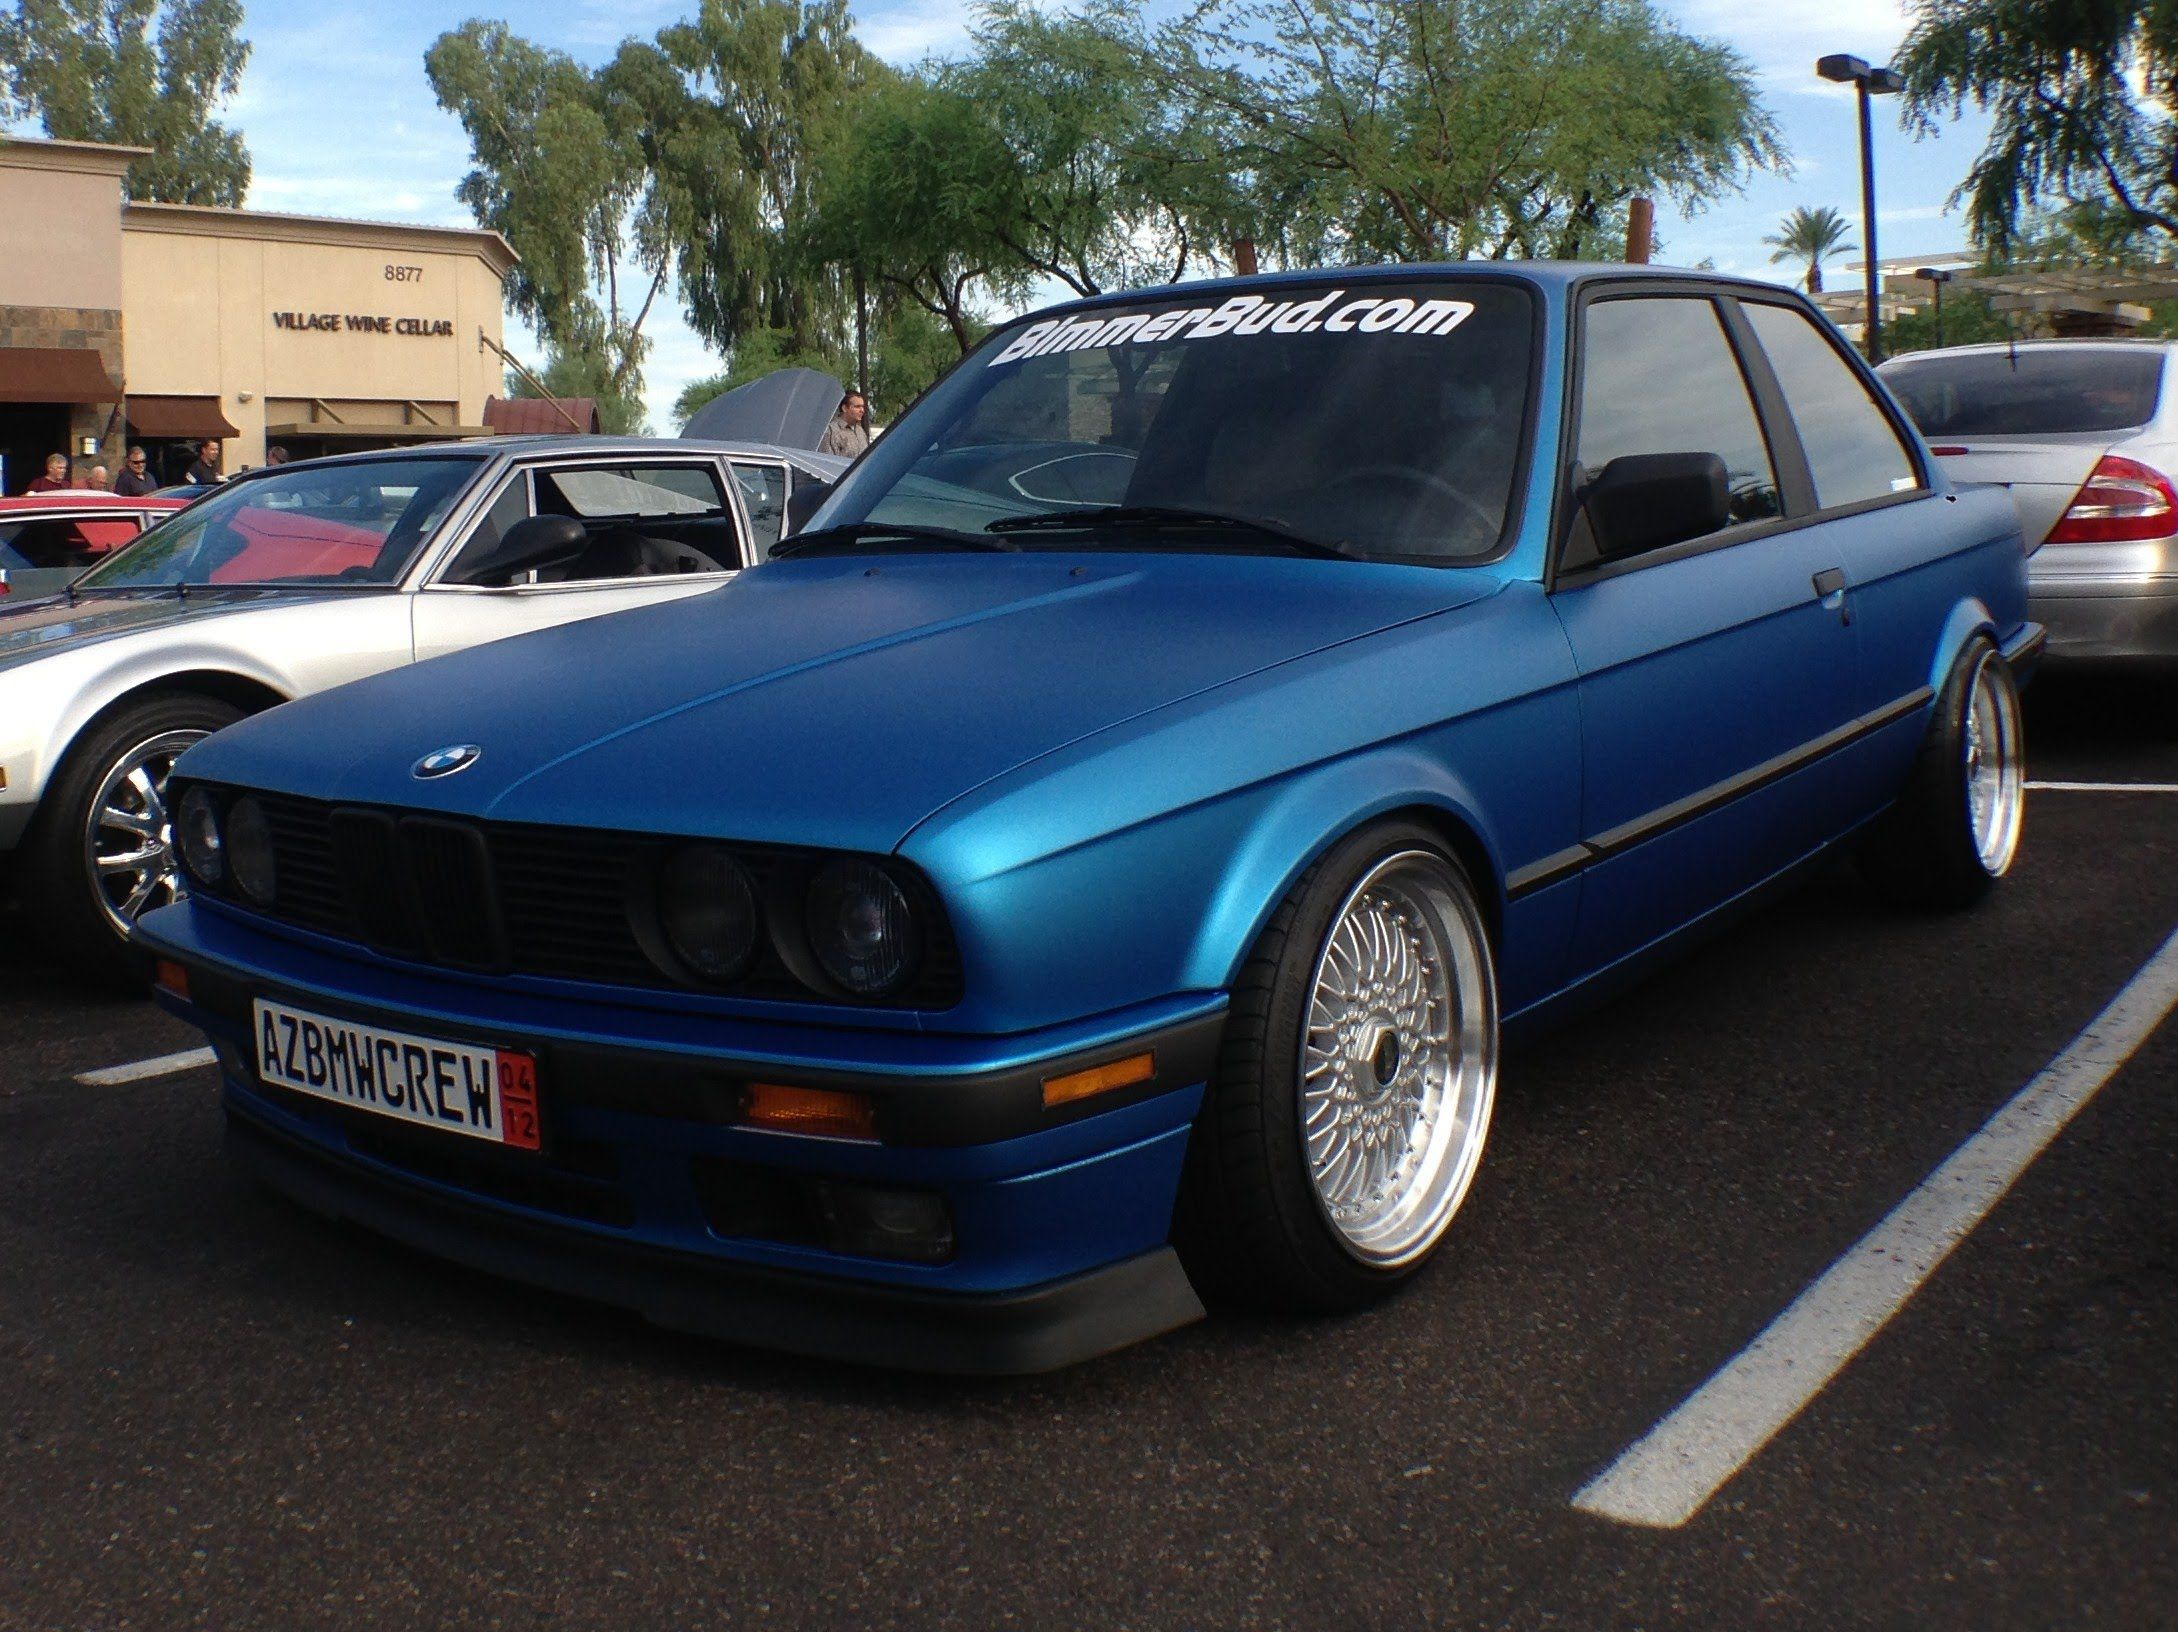 e30 bmw 320i cars pinterest e30 bmw and cars. Black Bedroom Furniture Sets. Home Design Ideas